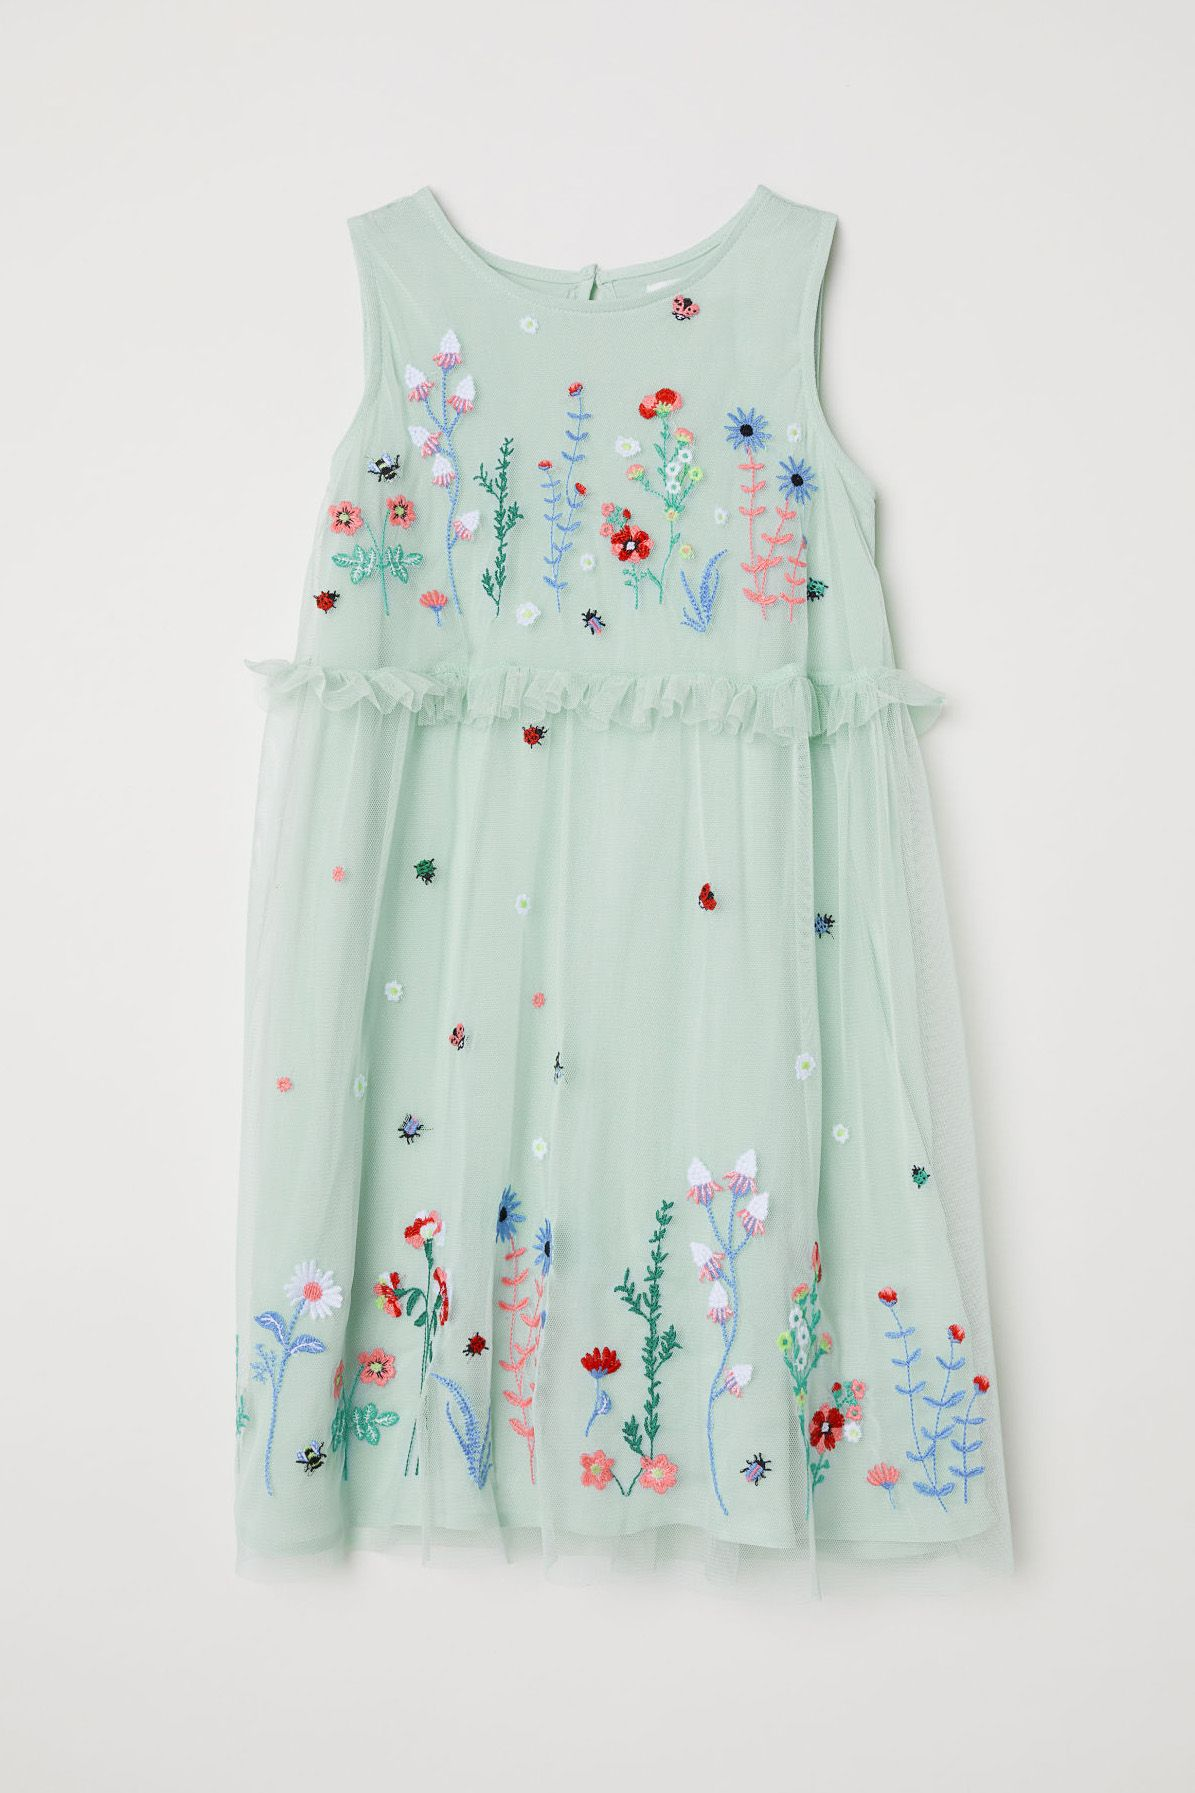 17 Cute Easter Outfits for Girls and Boys 2018 - Inexpensive Easter ...